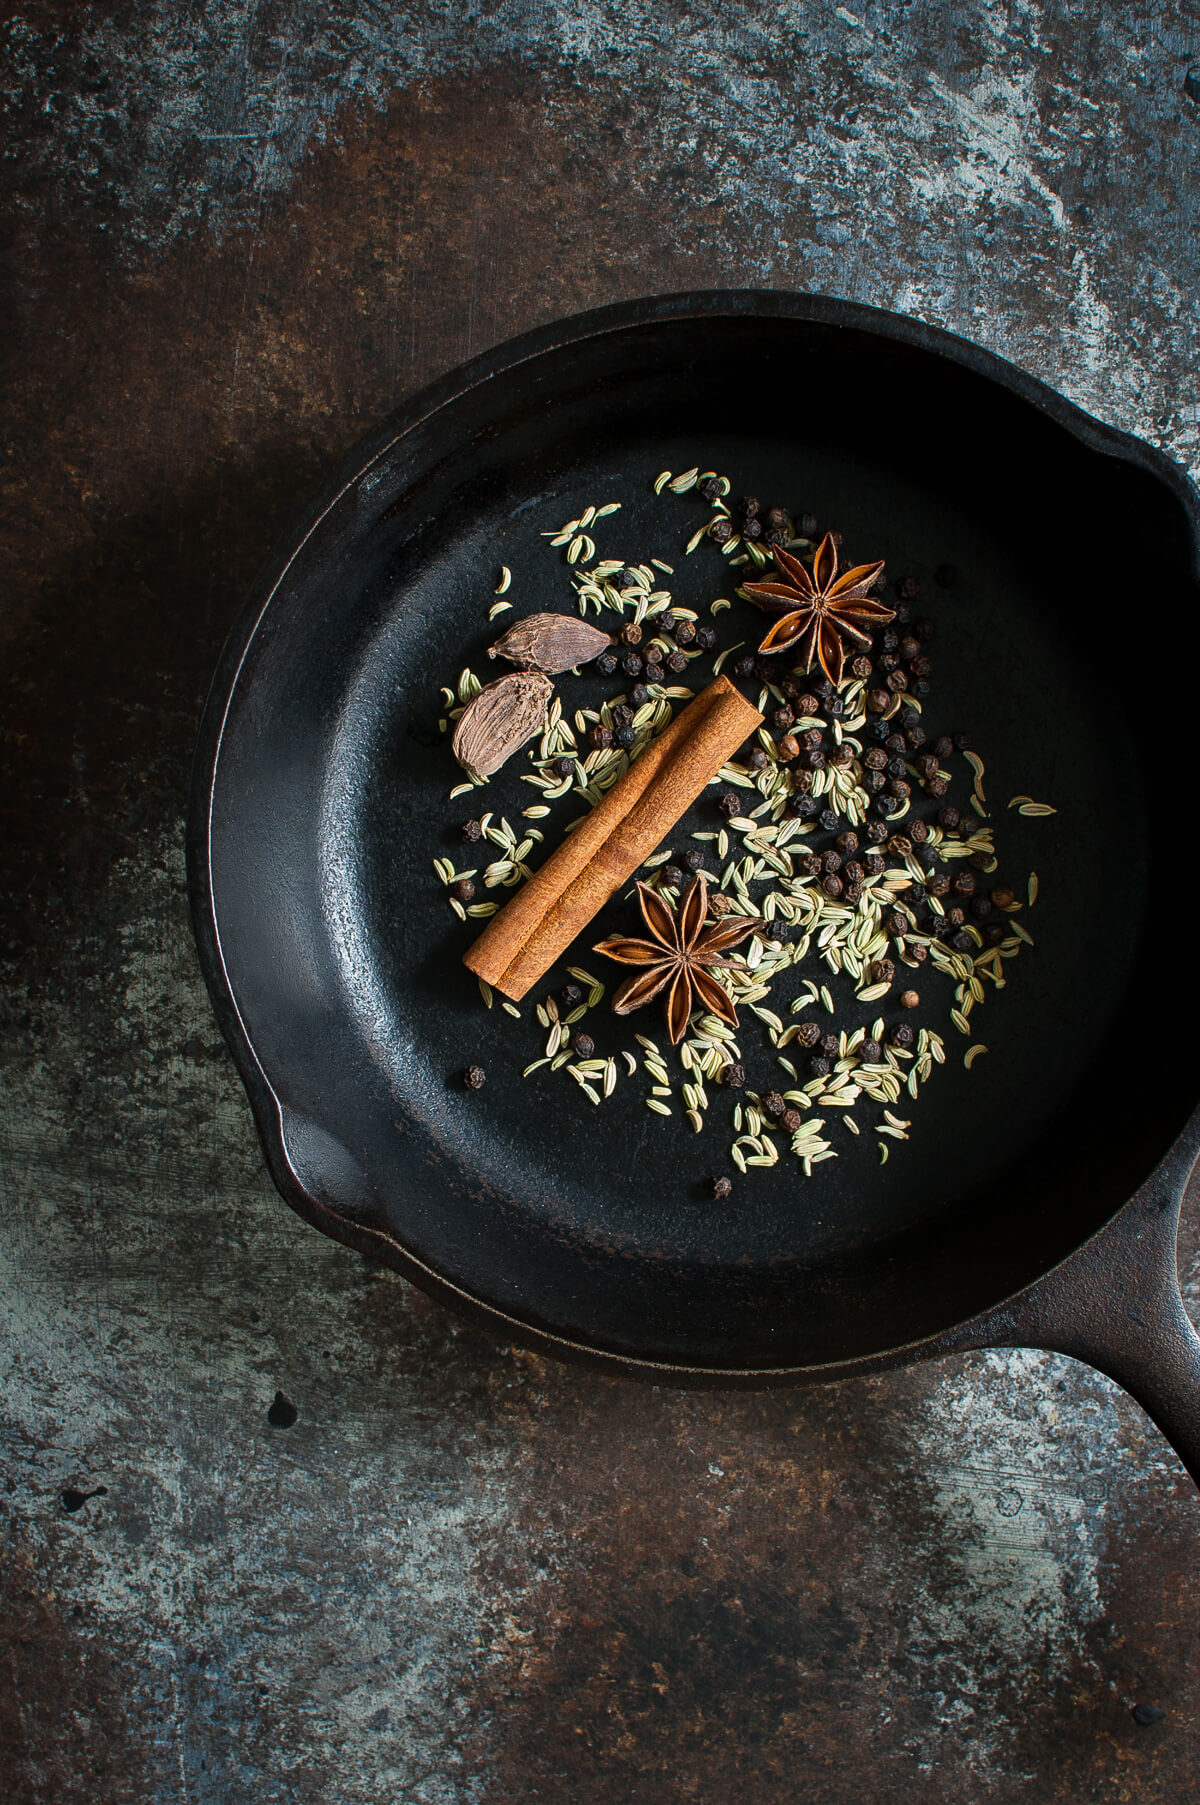 A skillet containing toasted spices for making chicken pho.